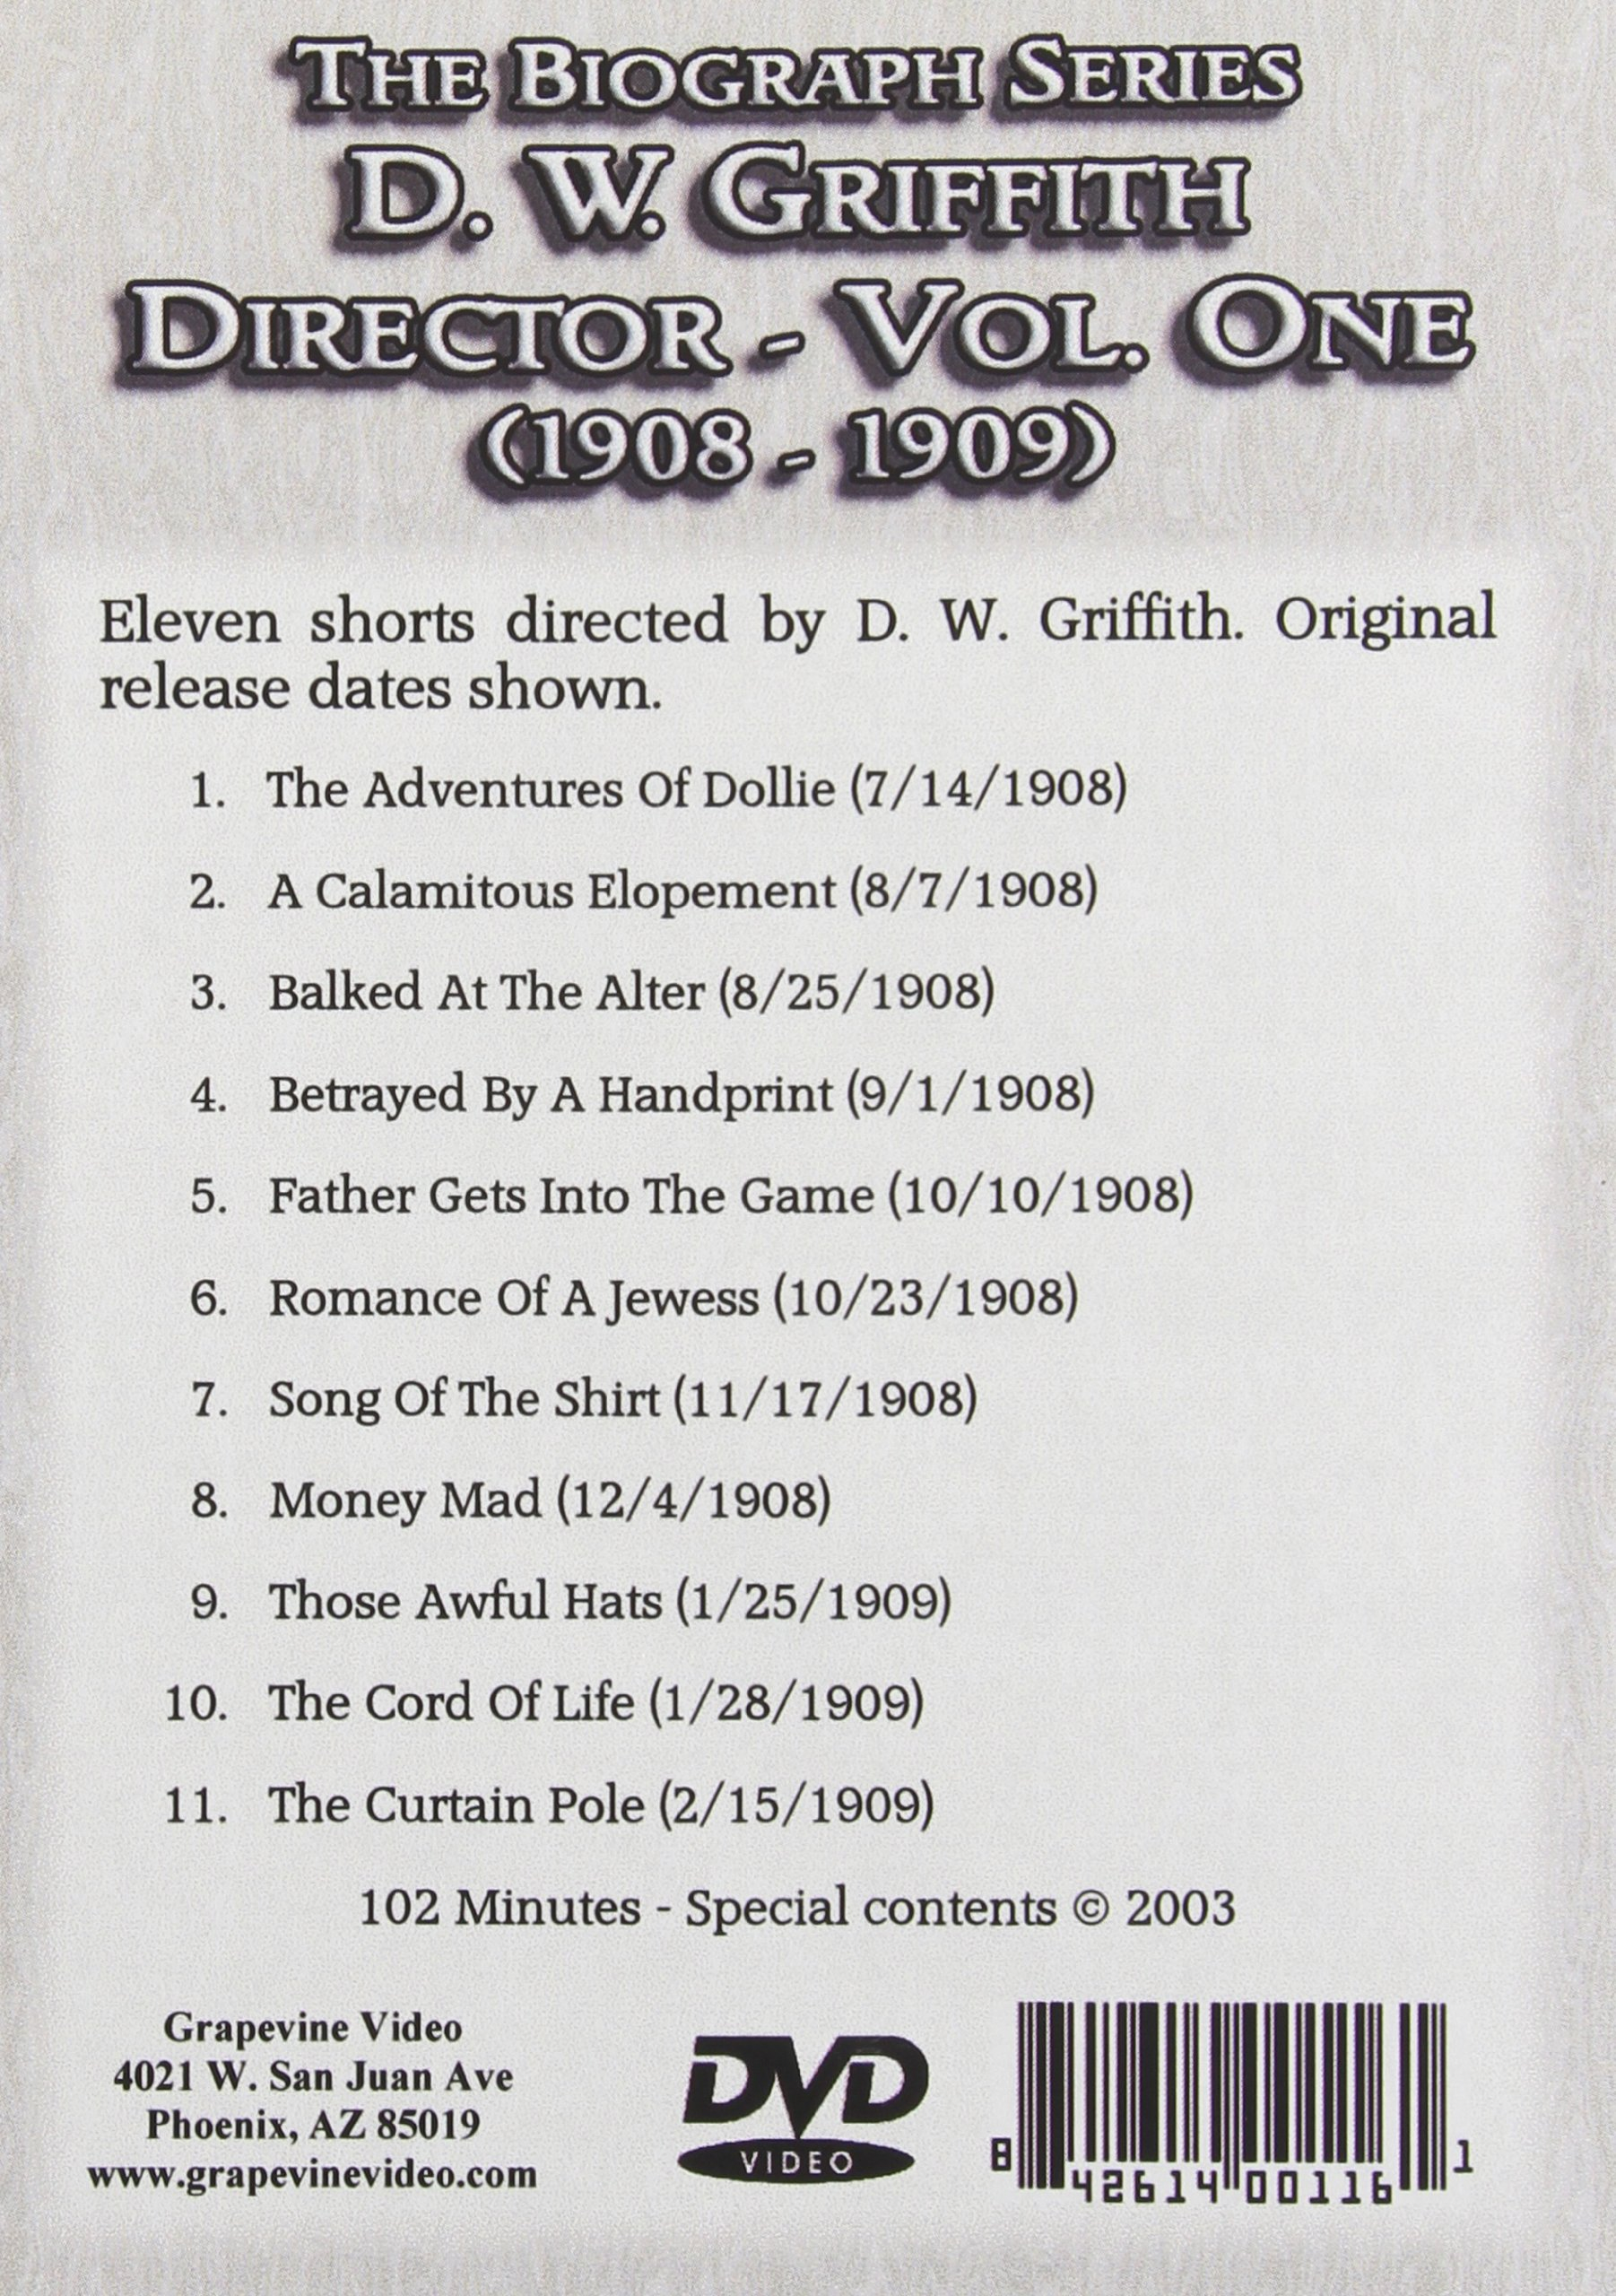 D.W. Griffith: Director: Volume 1 by Grapevine Video